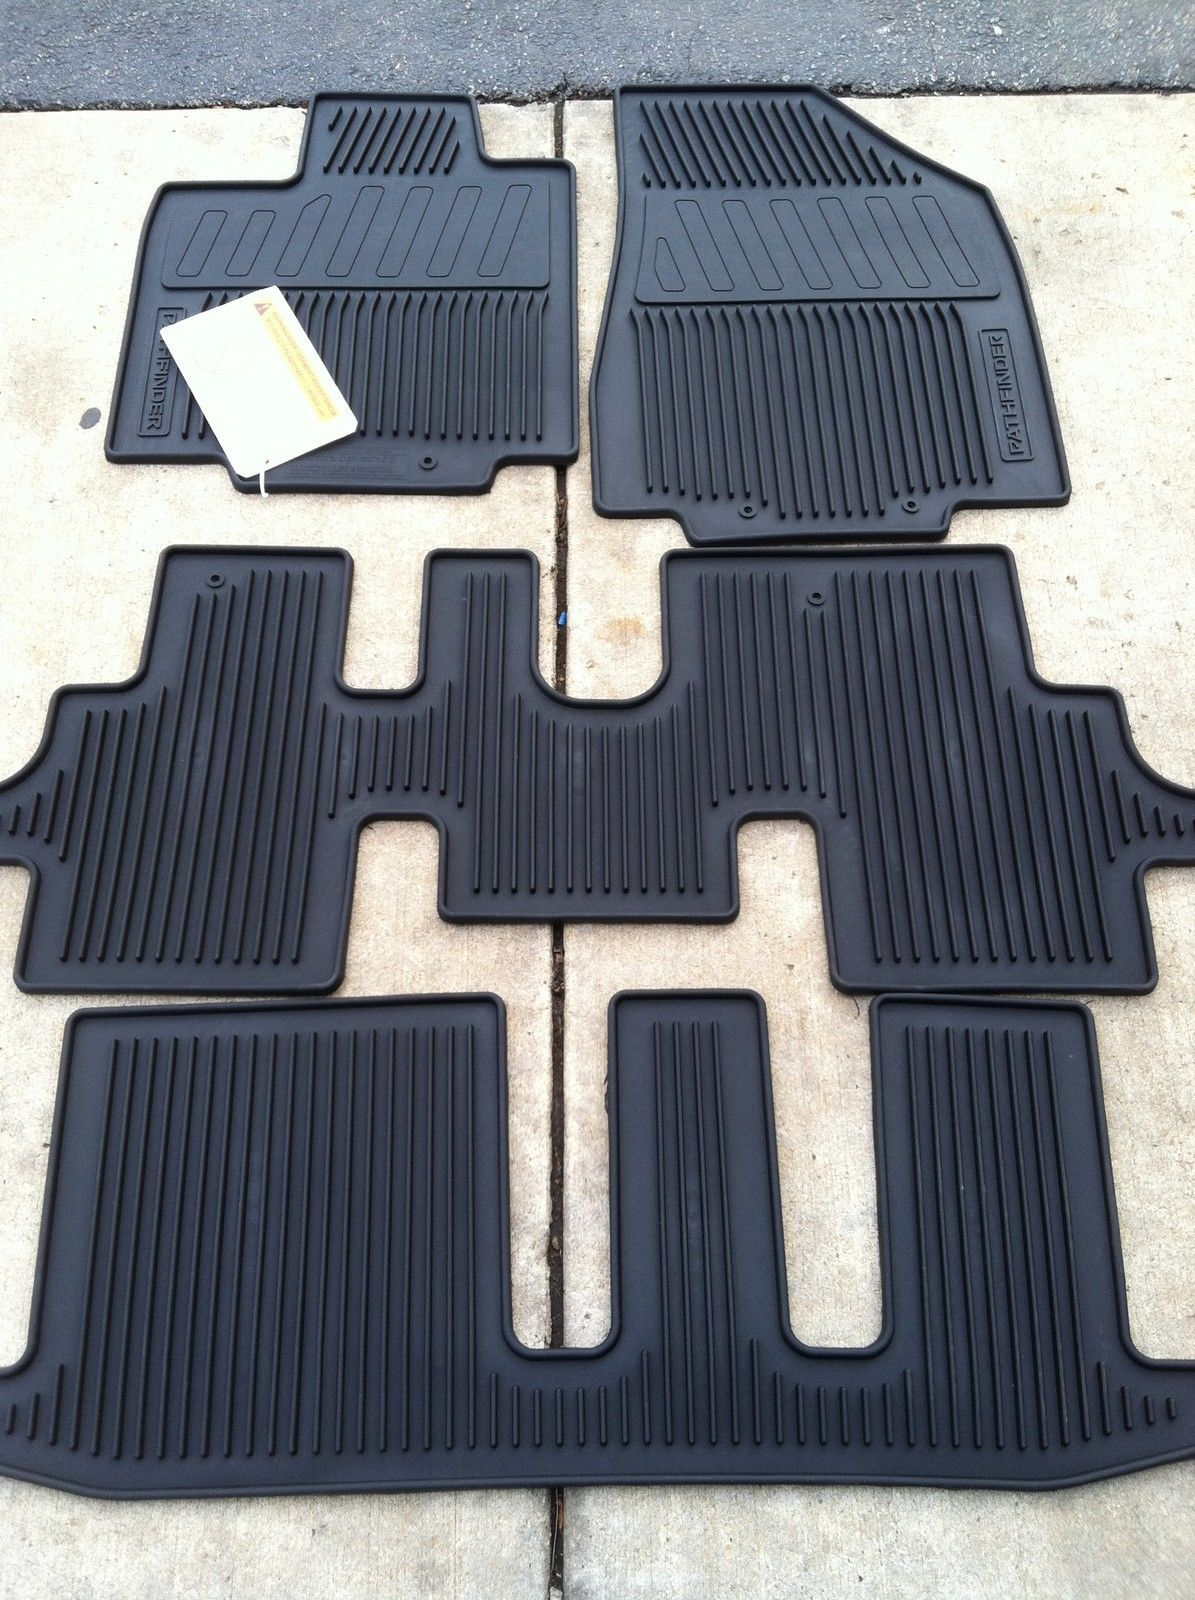 New Oem 2013 2017 Nissan Pathfinder Black 4pc Rubber All Weather Floor Mats Motors Parts Accessories 999e1 Nissan Pathfinder 2017 Nissan Pathfinder Nissan